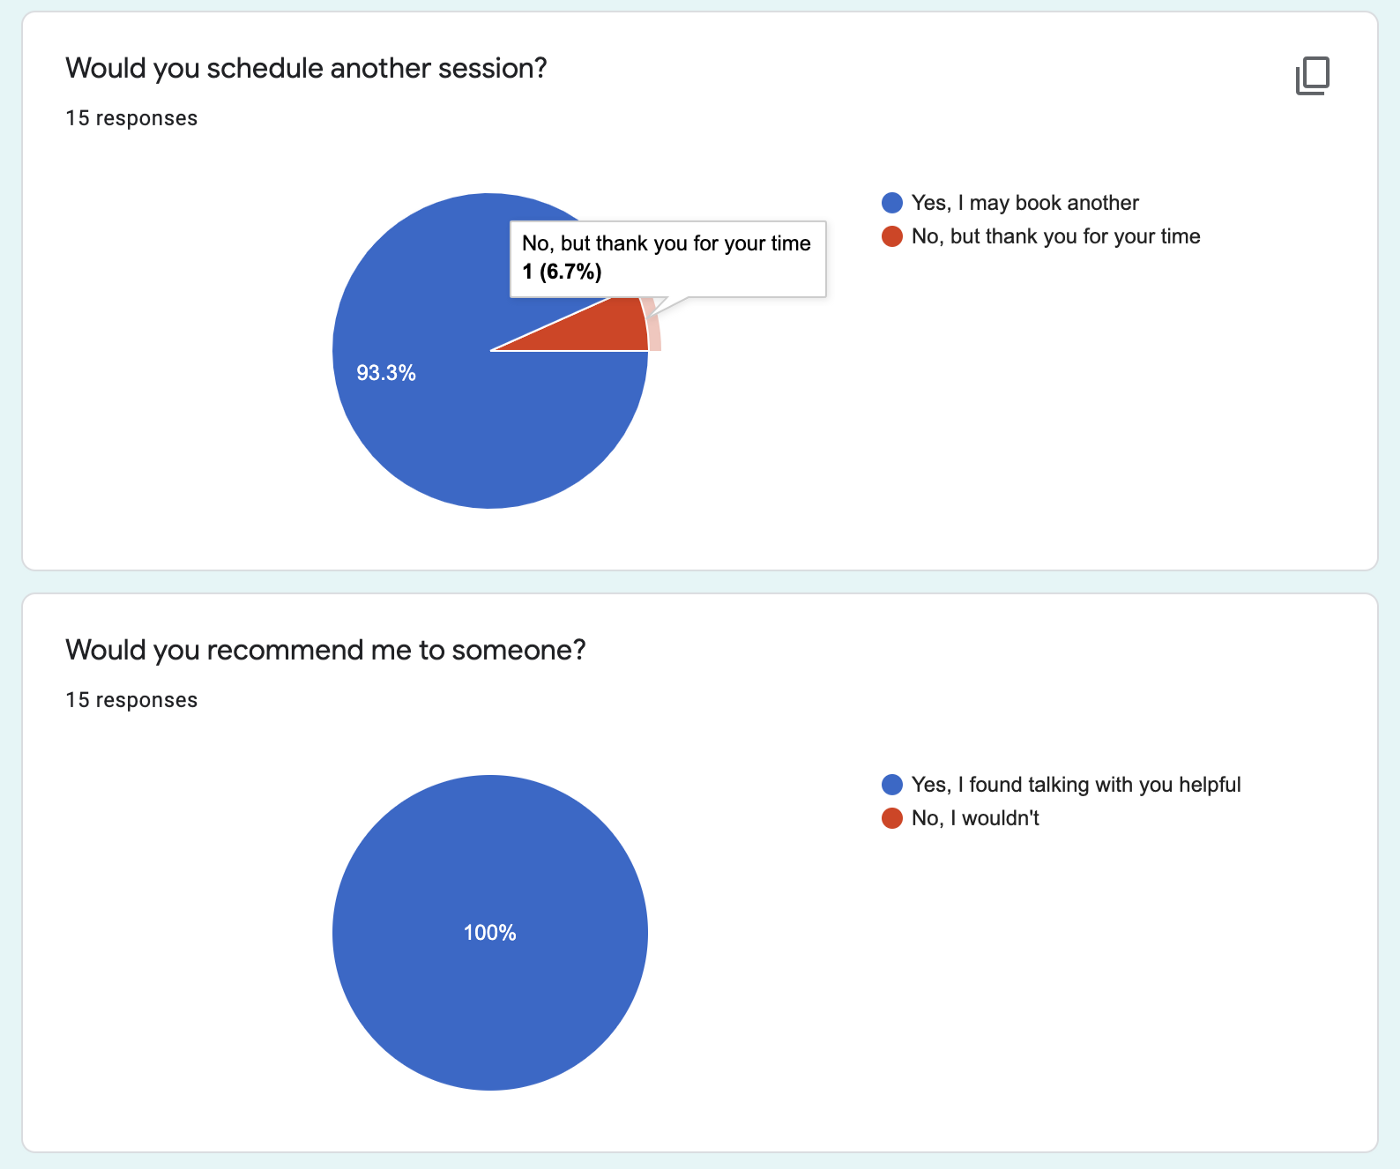 Two pie charts. 1st shows 14/15 people said they would like to book another session. 2nd shows 100% found the session helpful